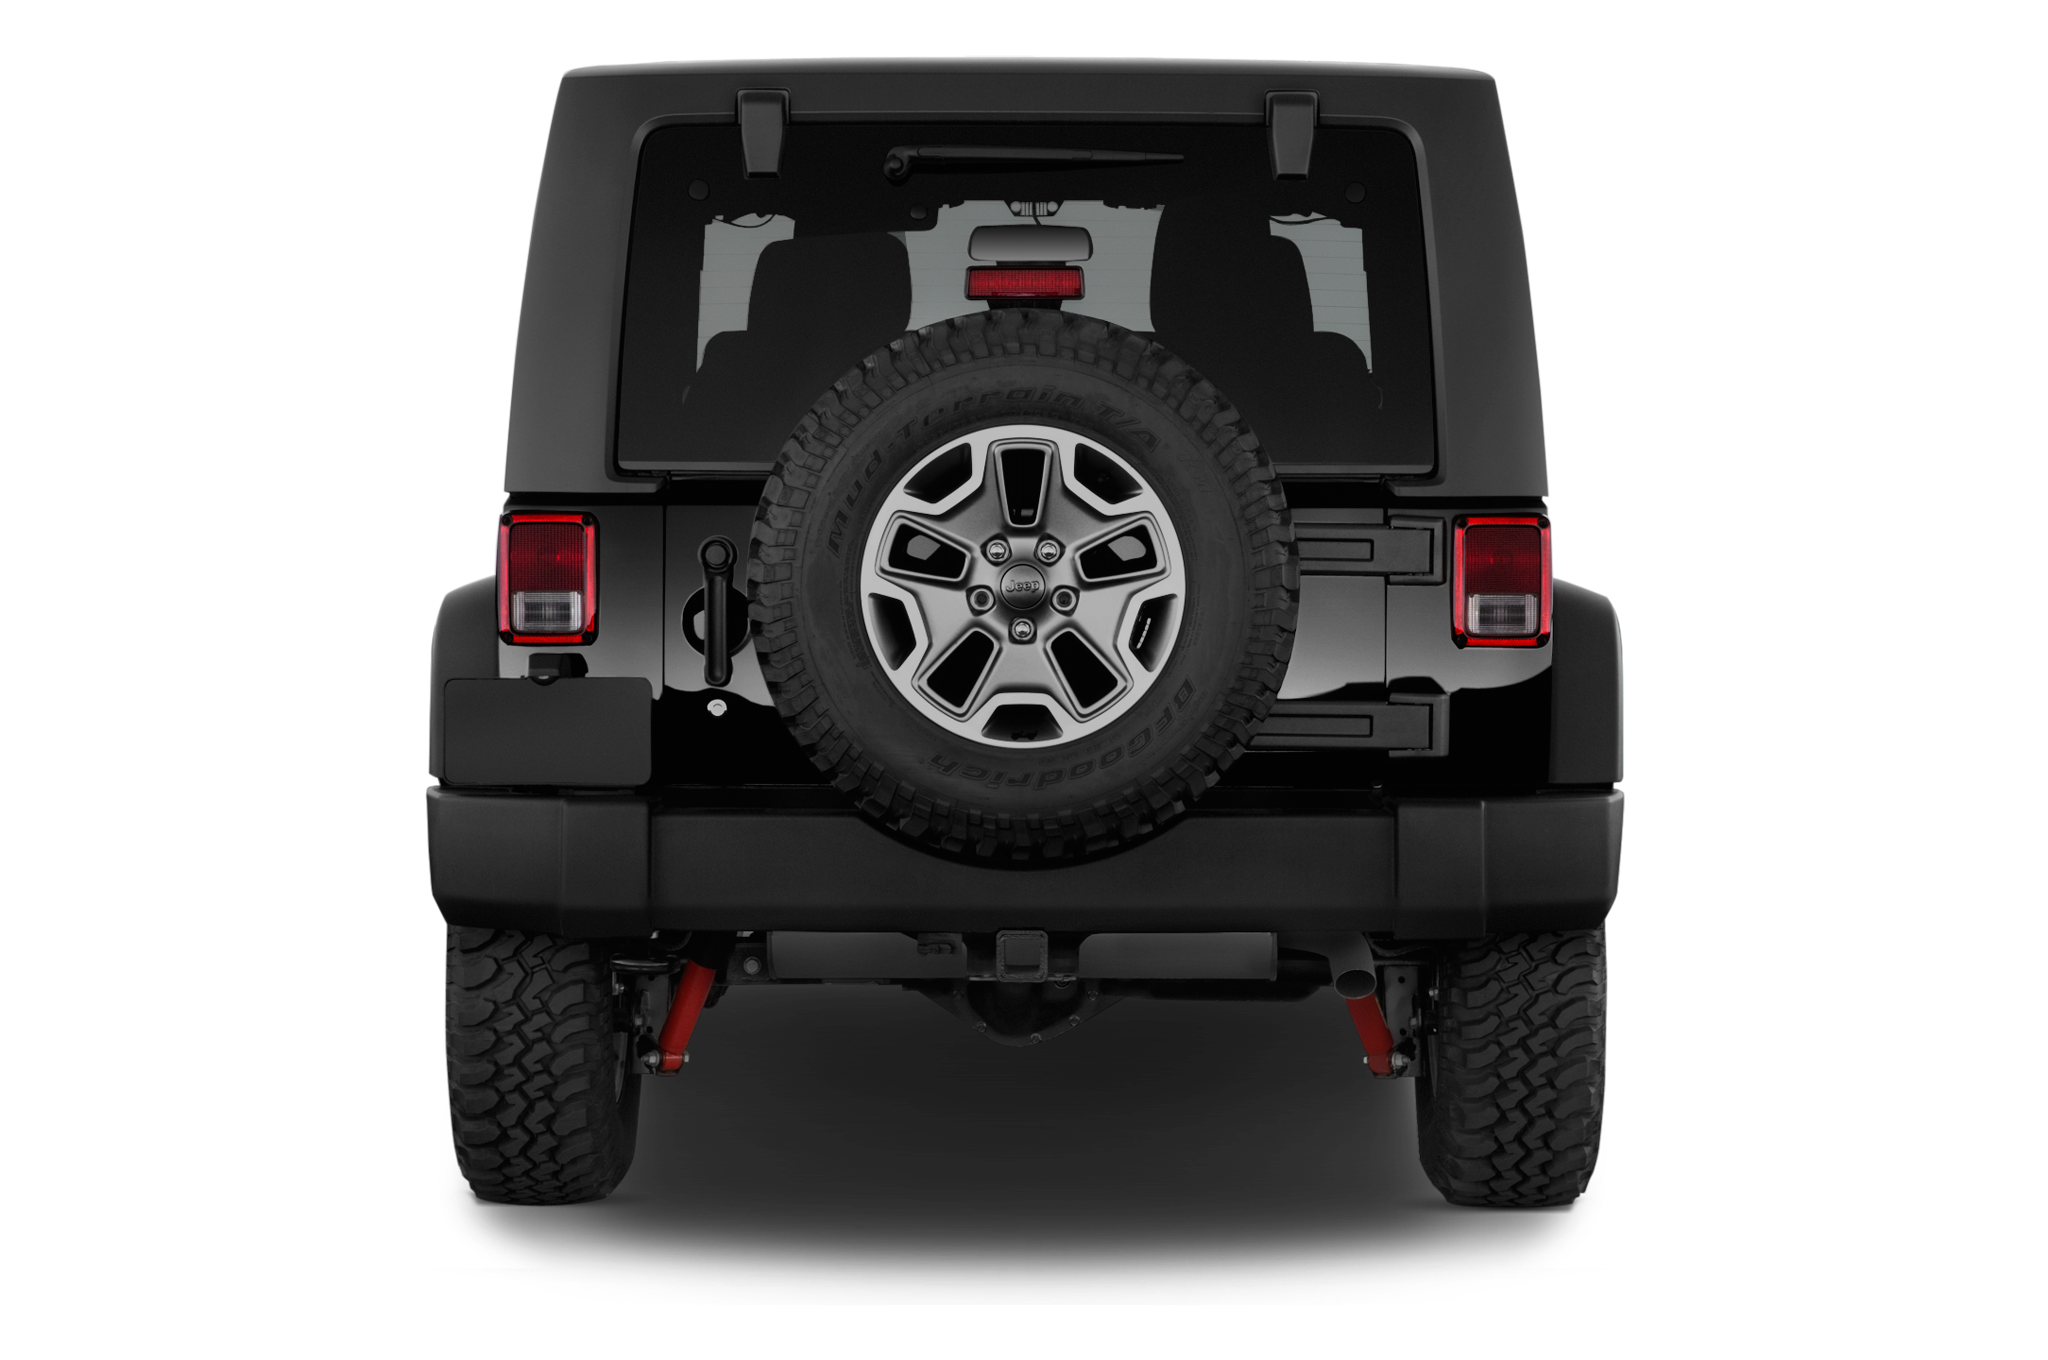 2018 Jeep Wrangler Prototype Spied With Body Suspension Modifications 2005 27 50